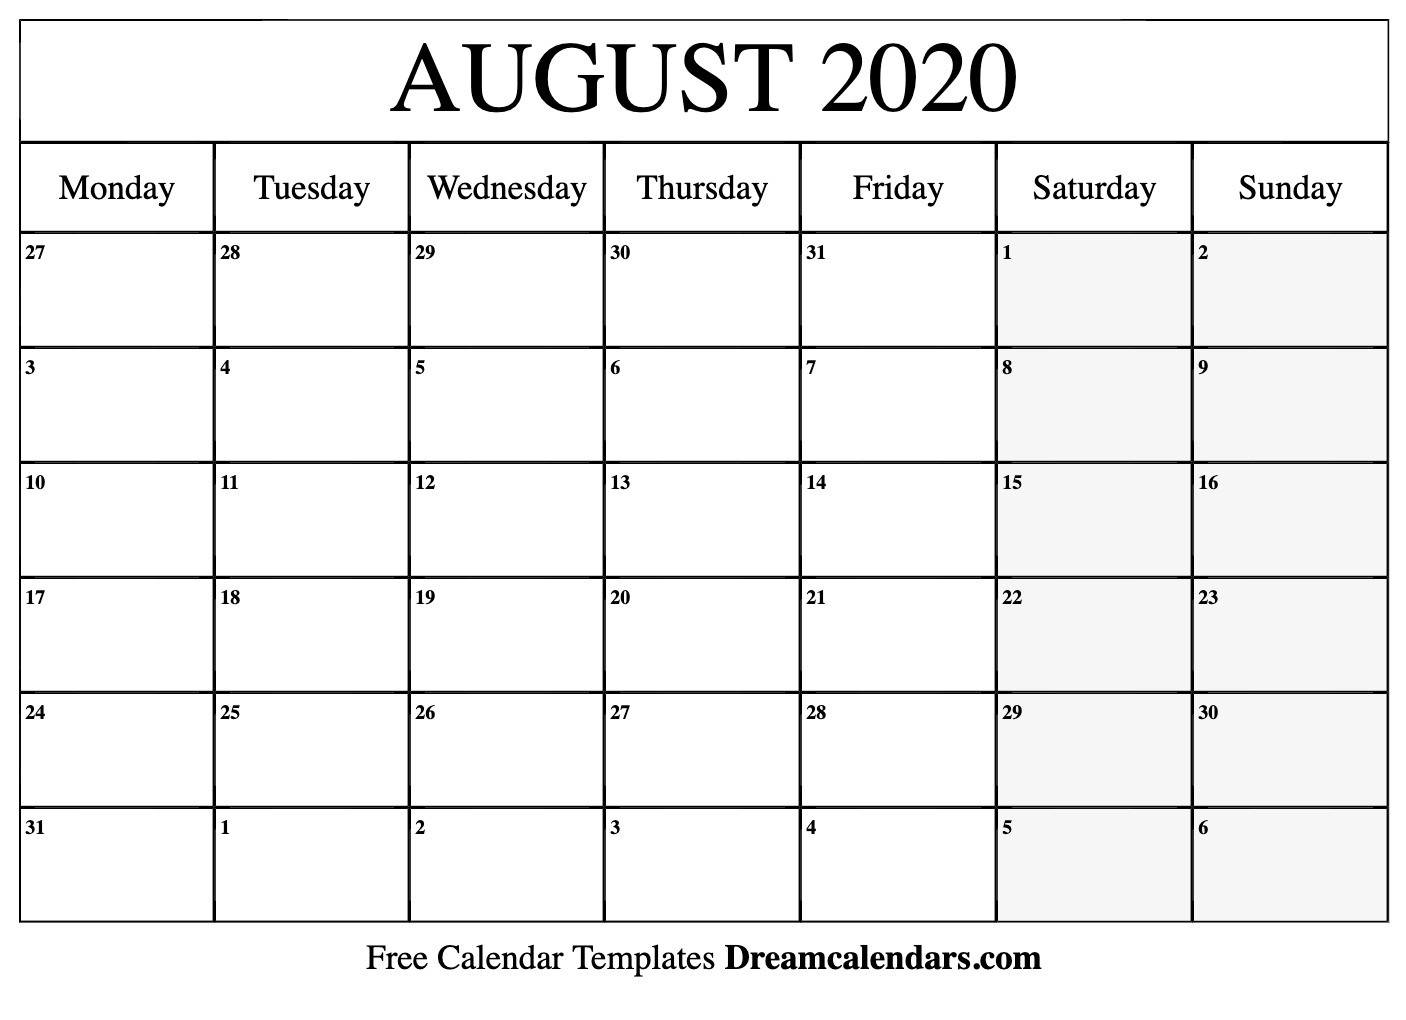 Printable August 2020 Calendar Templates - Helena Orstem